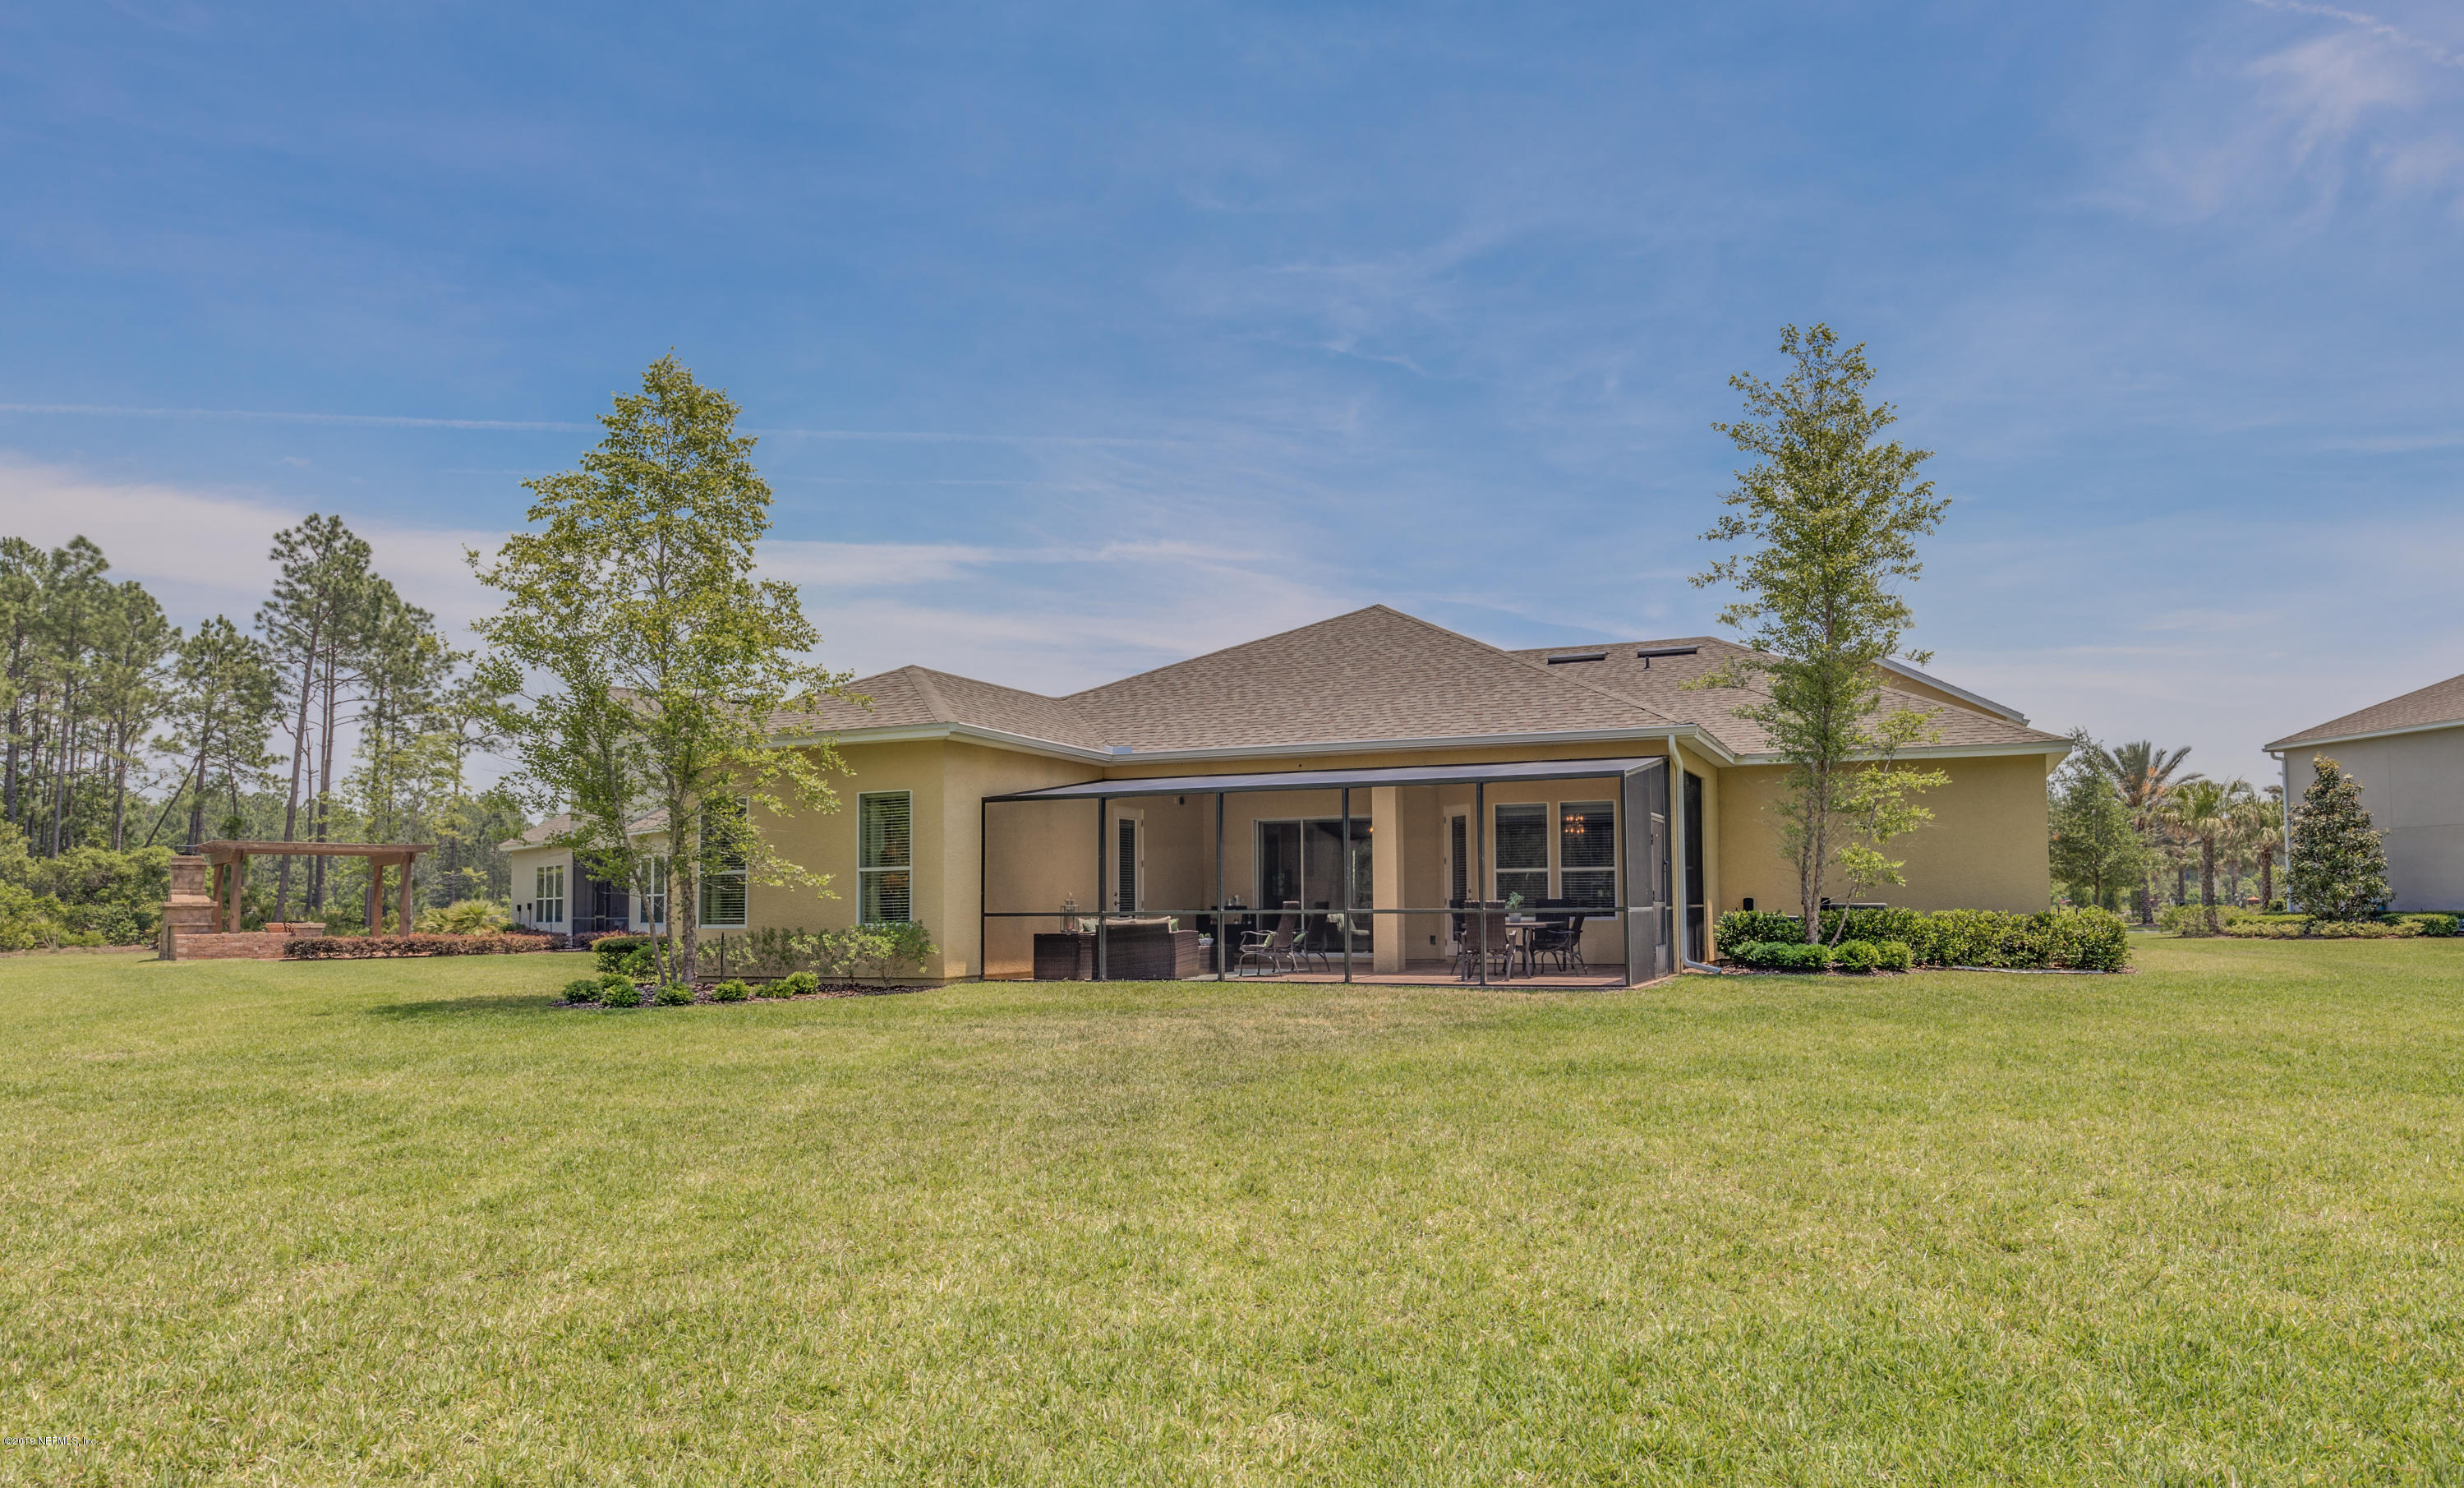 81 MITAD, ST AUGUSTINE, FLORIDA 32095, 4 Bedrooms Bedrooms, ,5 BathroomsBathrooms,Residential - single family,For sale,MITAD,988766